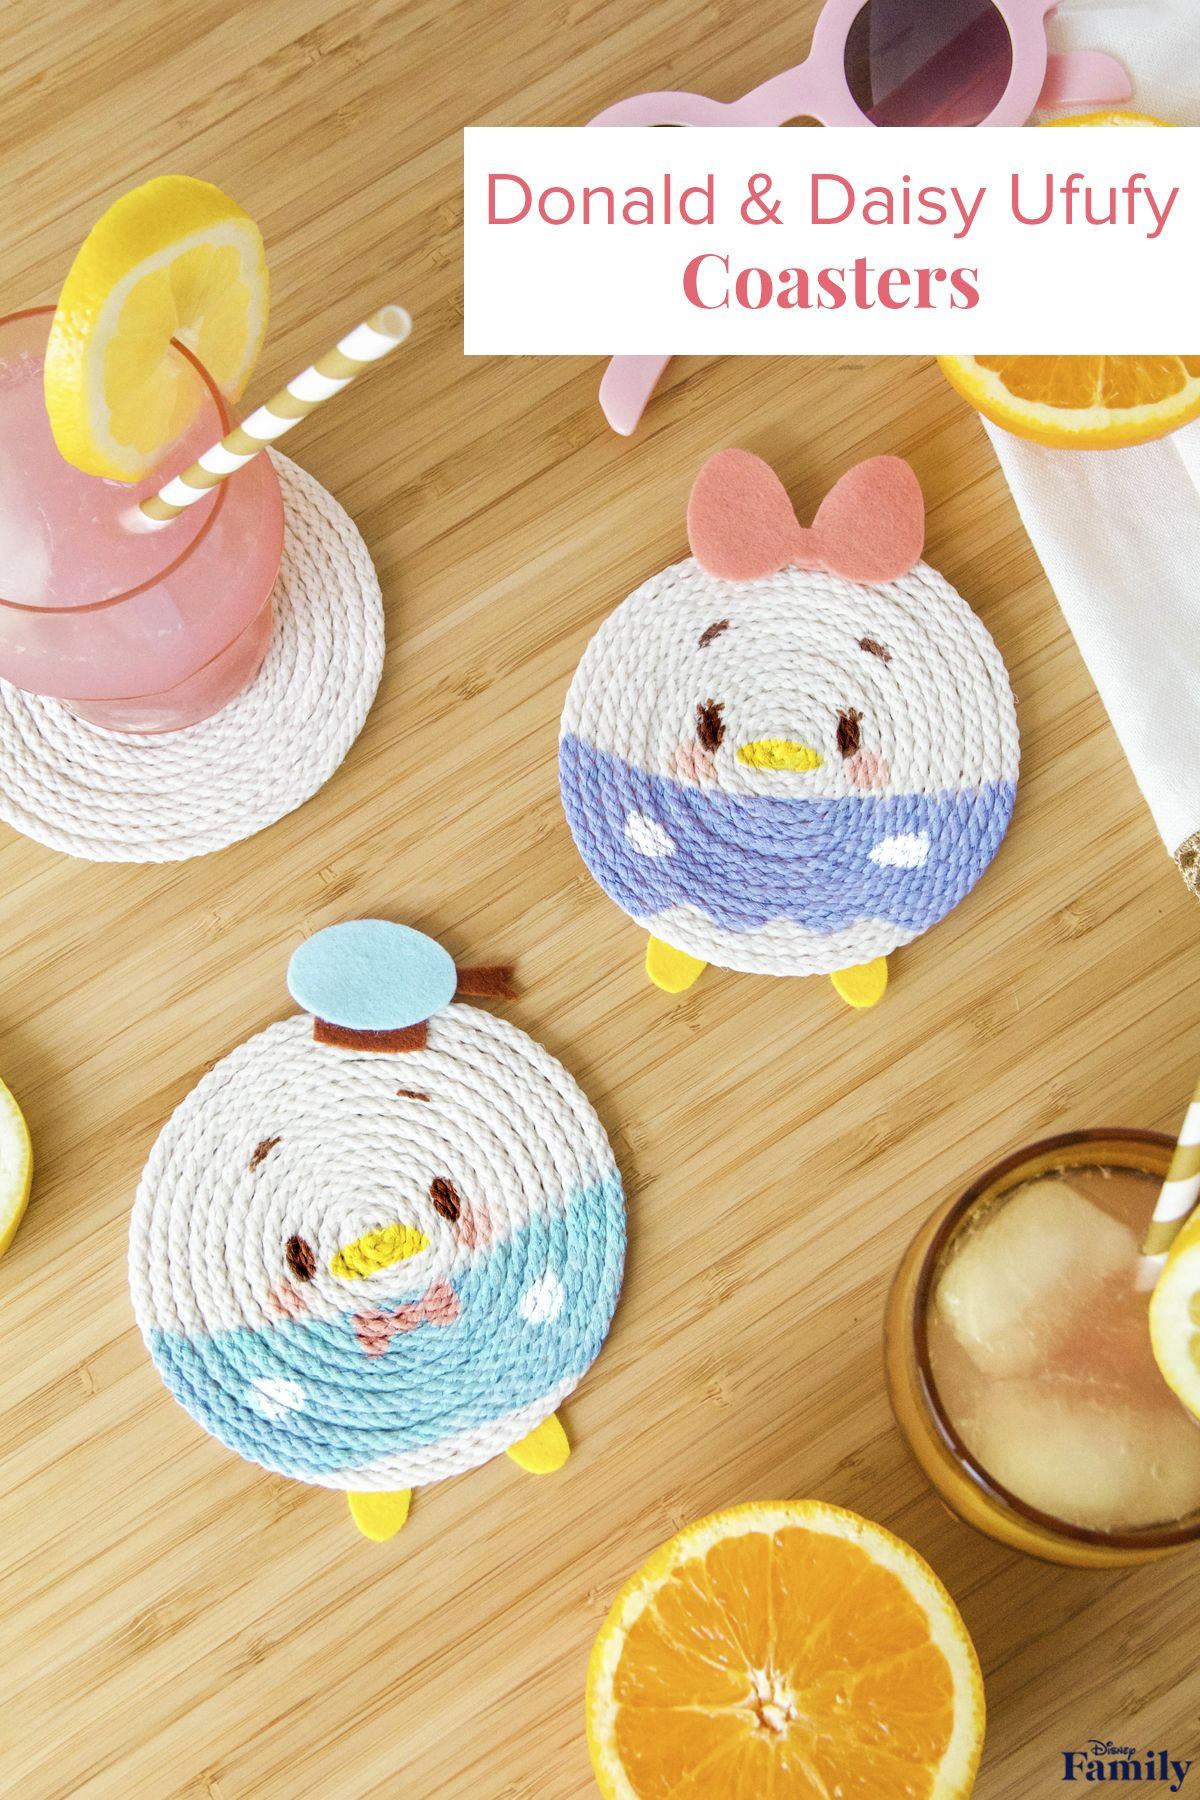 Keep these sweet little friends close by when your family has cold drinks! Inspired by the cute Ufufy plushes, these DIY Donald and Daisy Coasters are fun to make and useful to have around! Click for the Mickey & Friends craft tutorial.